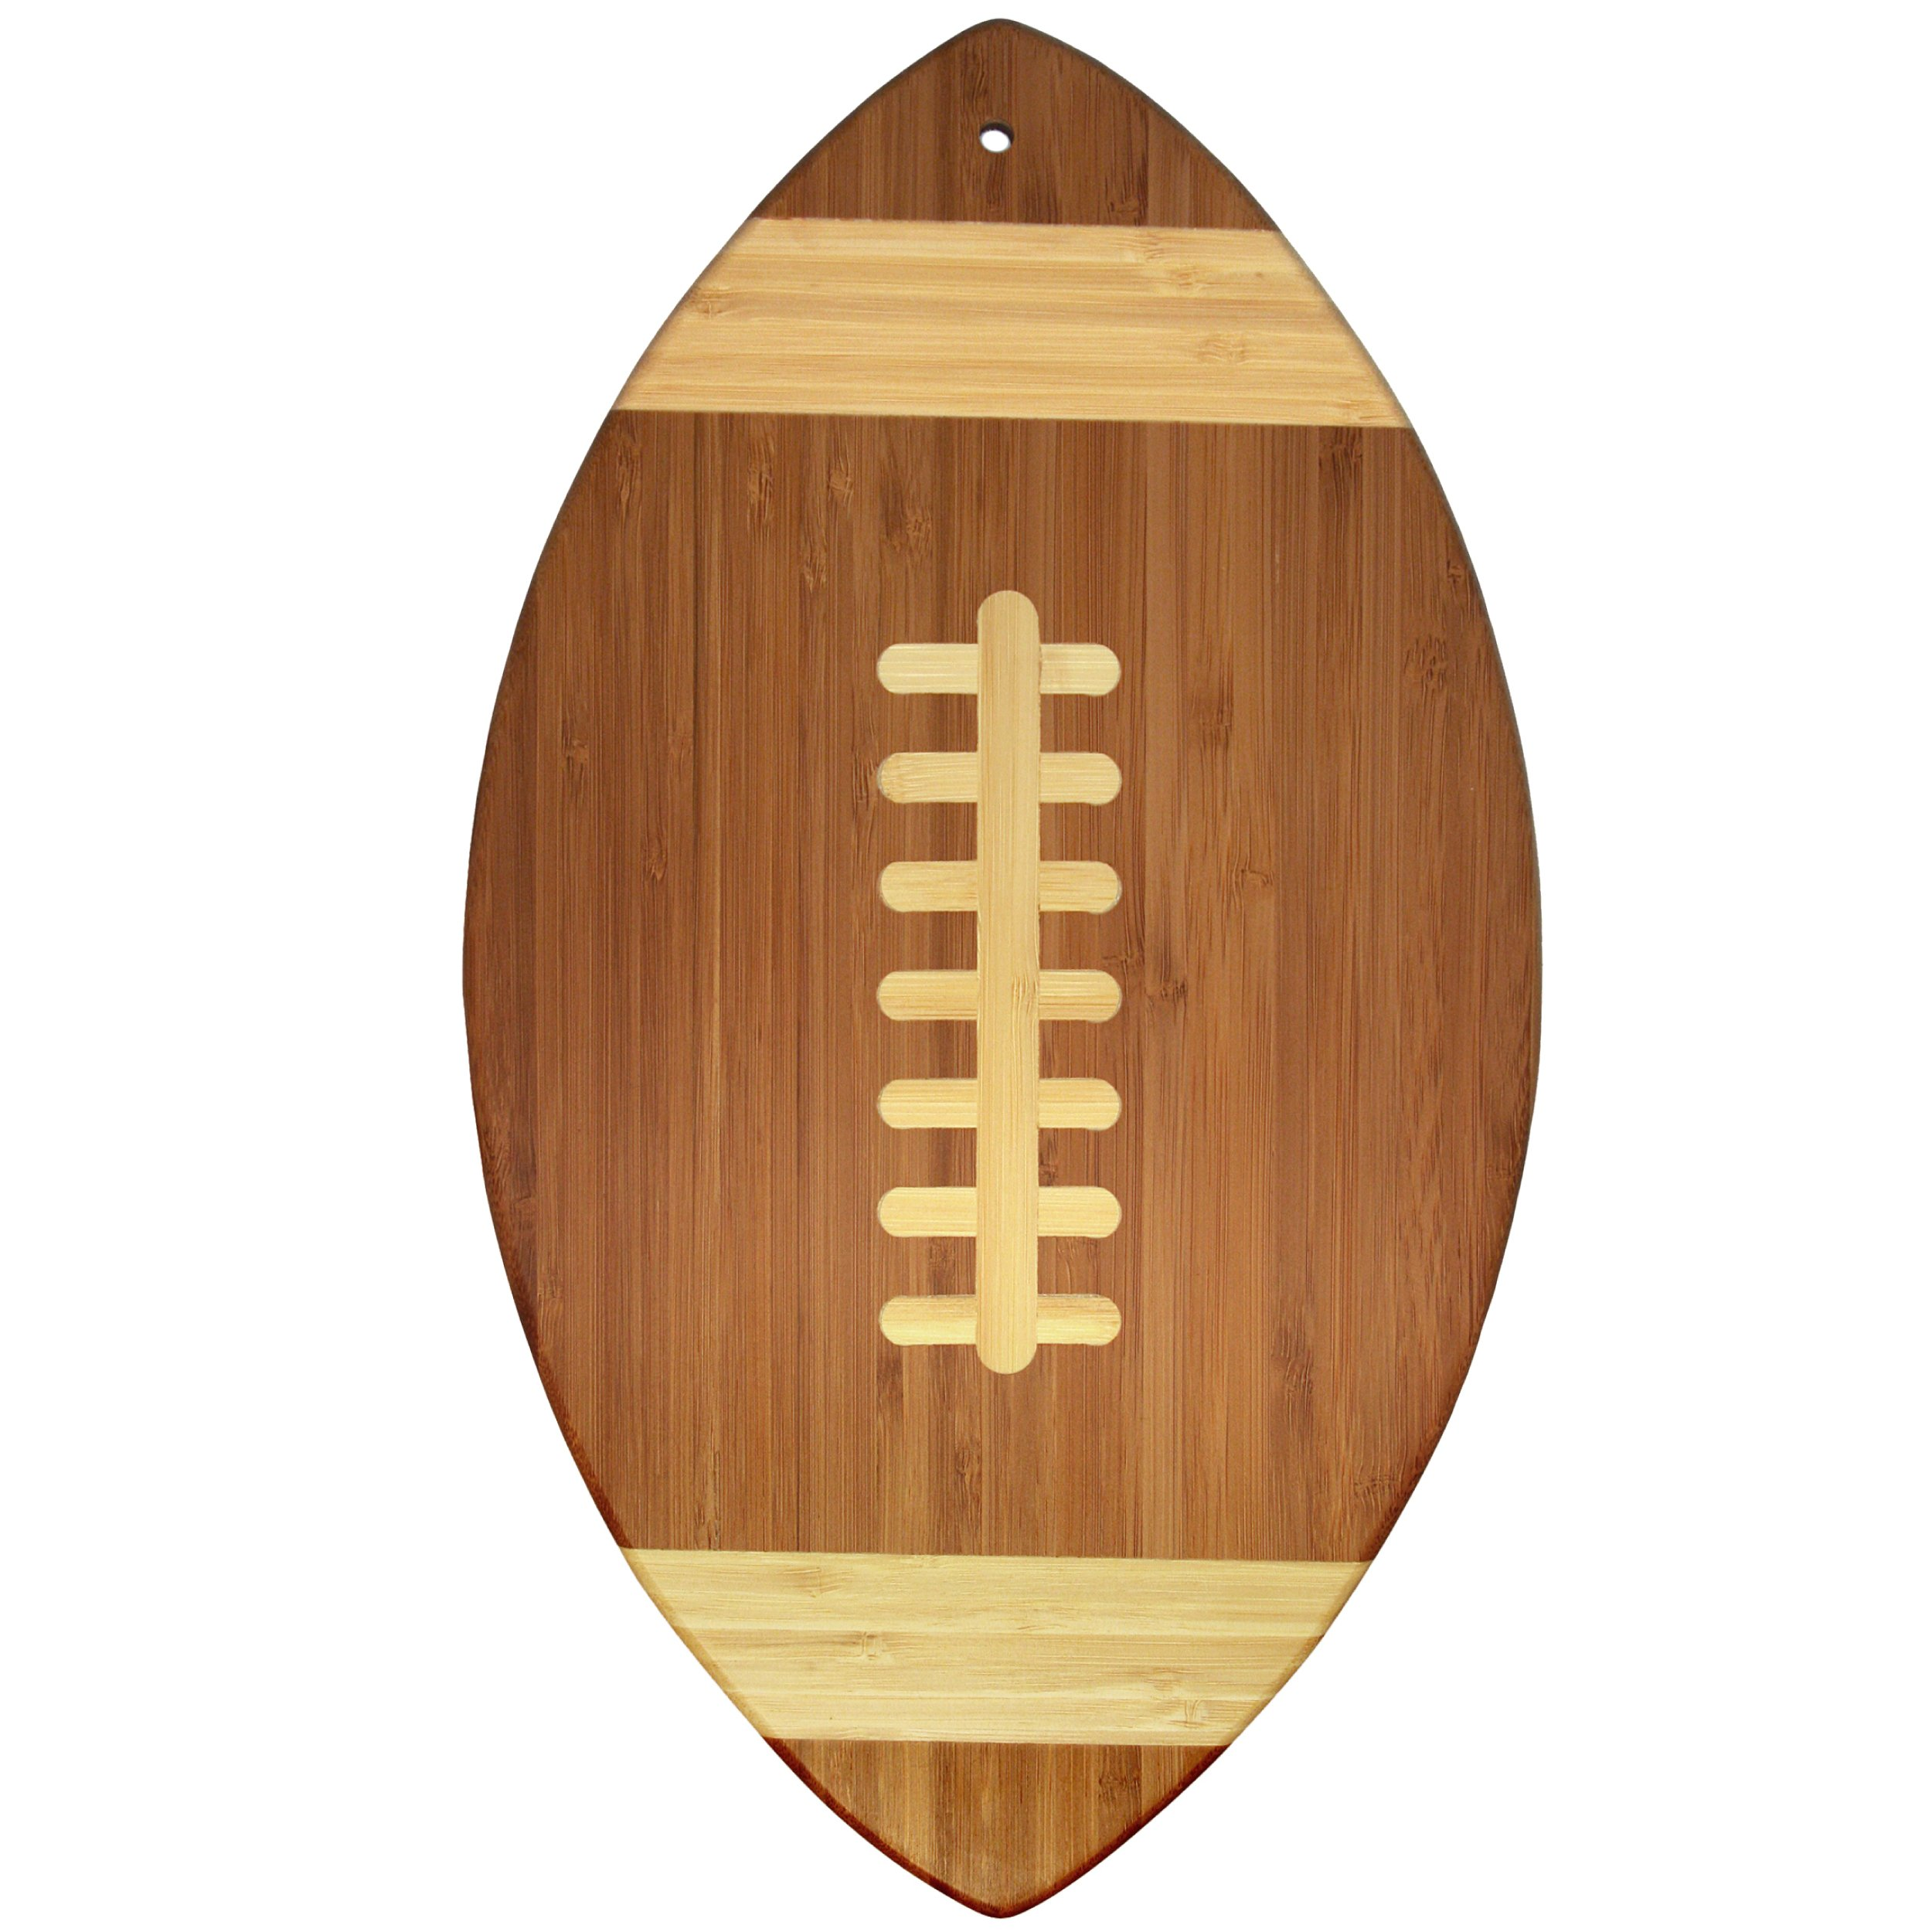 Totally Bamboo Football Shaped Bamboo Serving and Cutting Board, 14'' x 8-1/2''